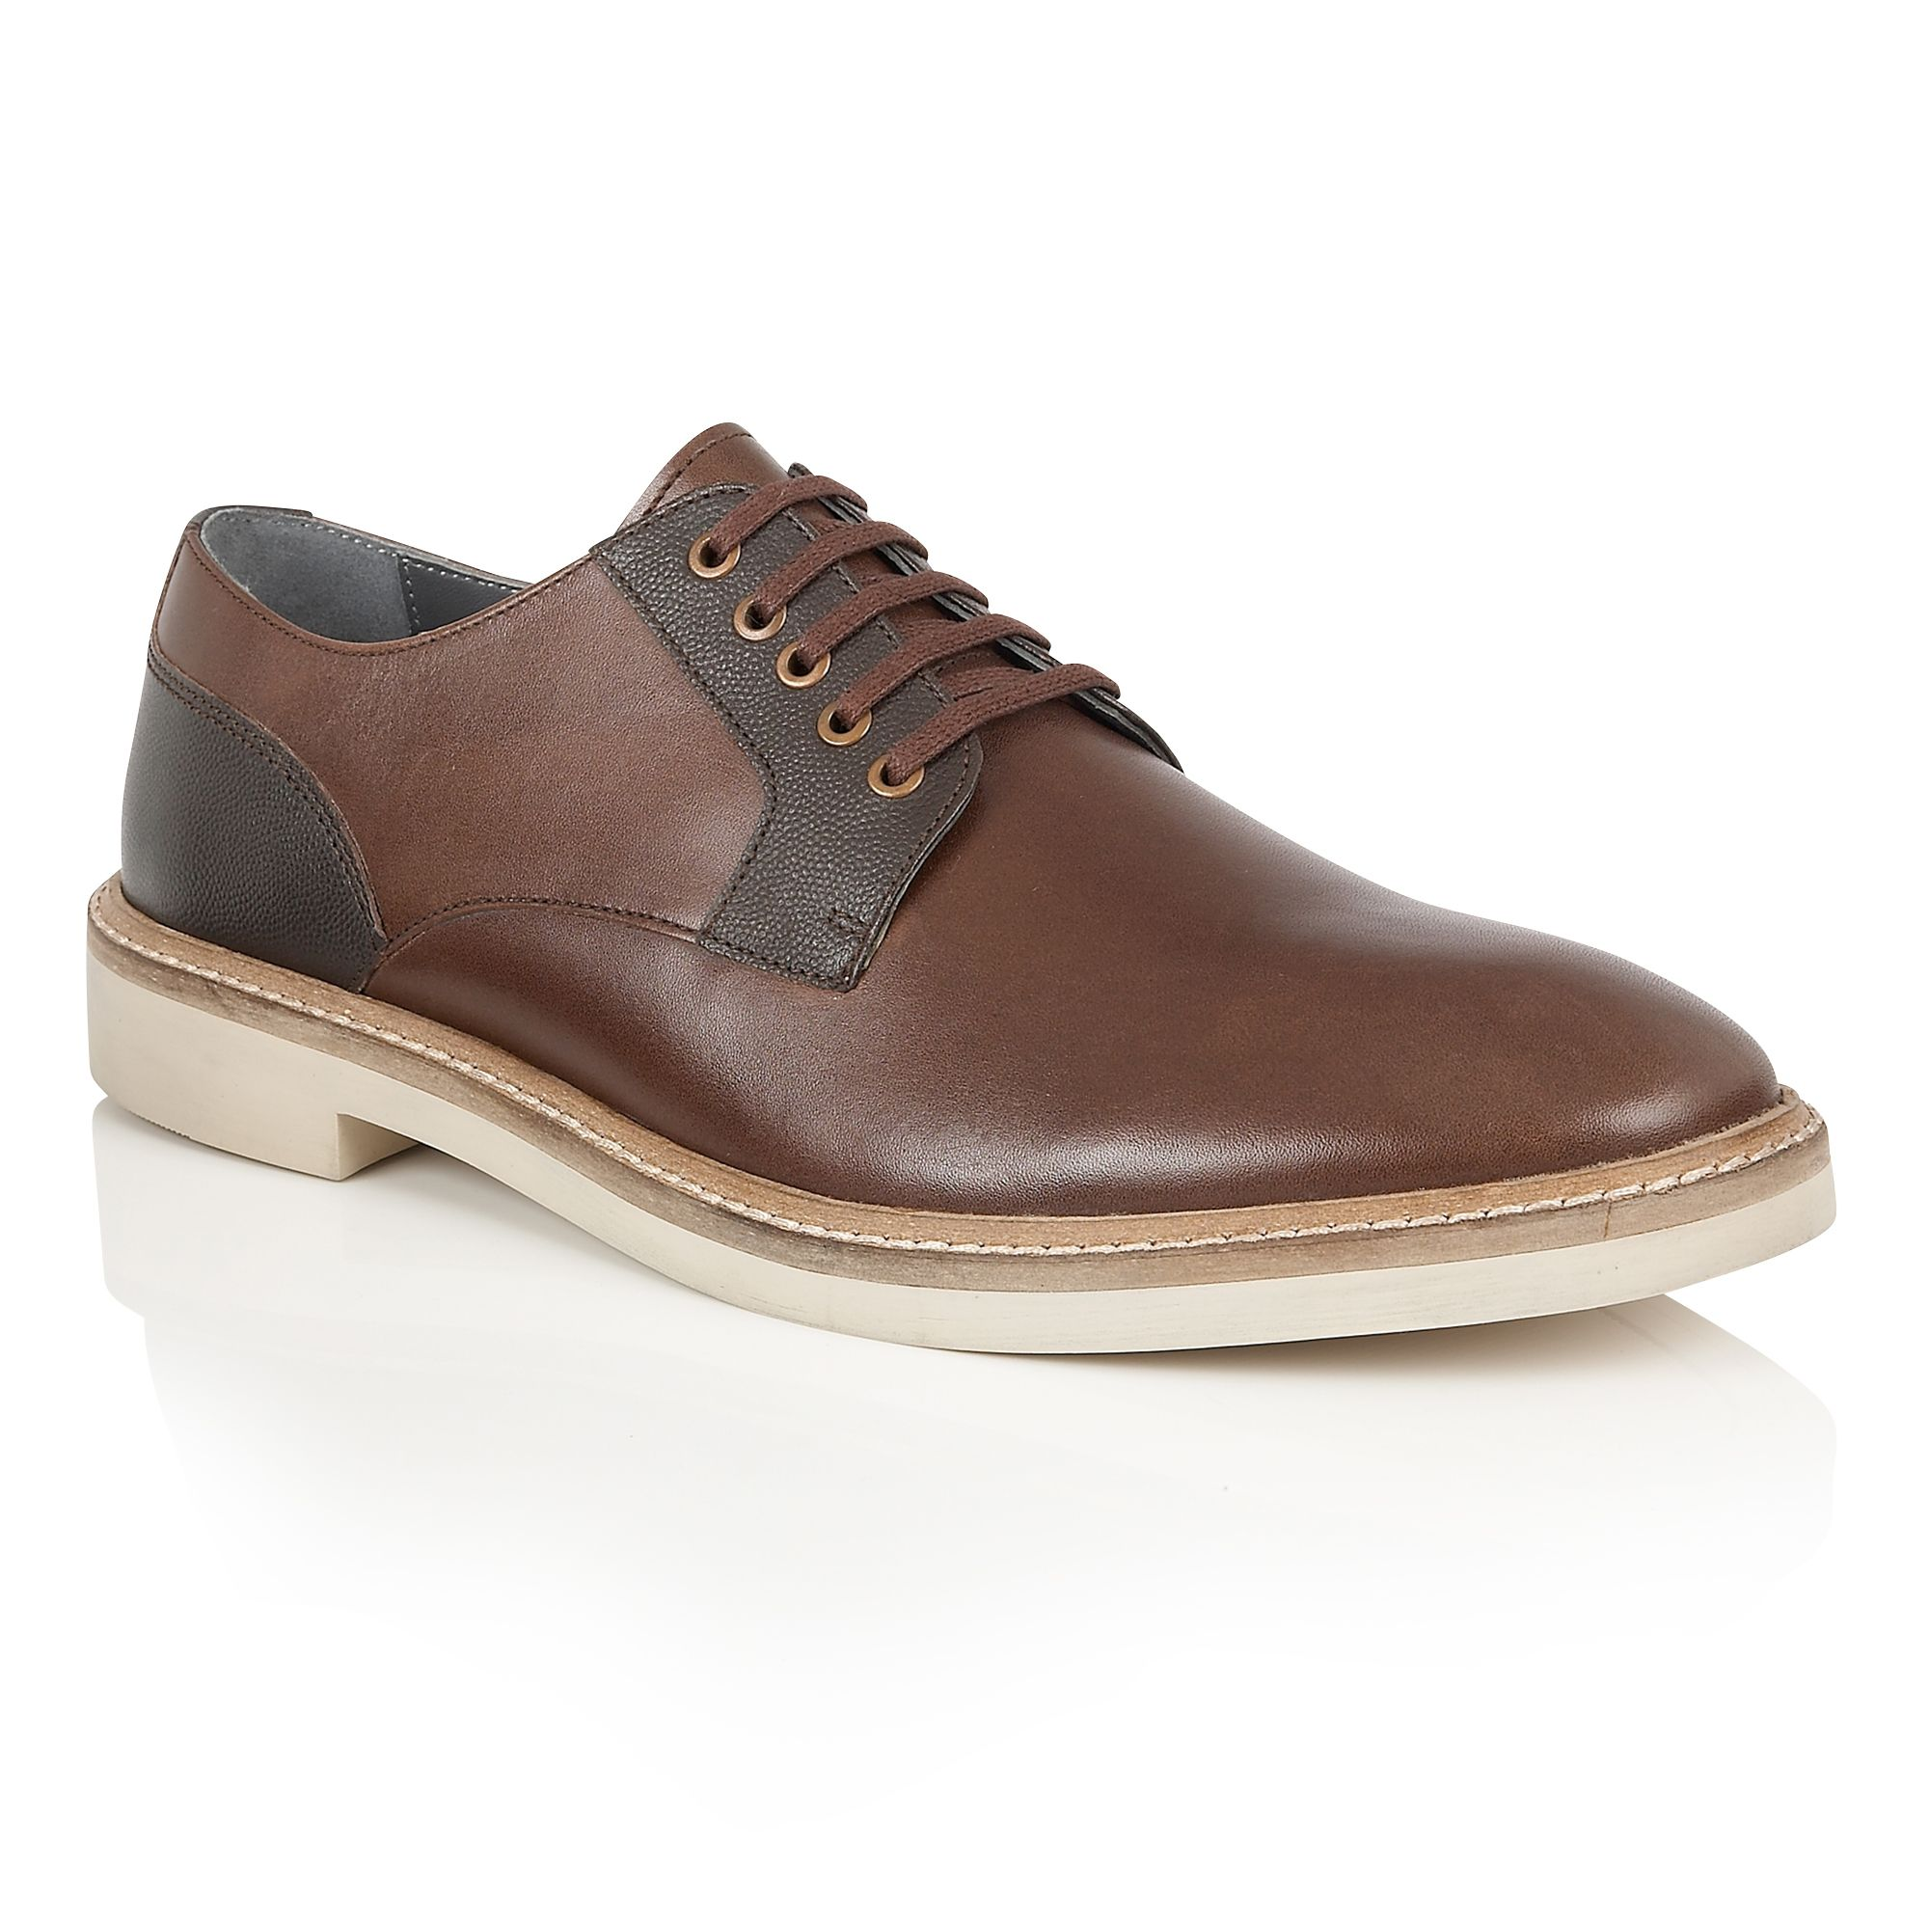 Frank Wright Frank Wright Banff Mens Shoes, Brown